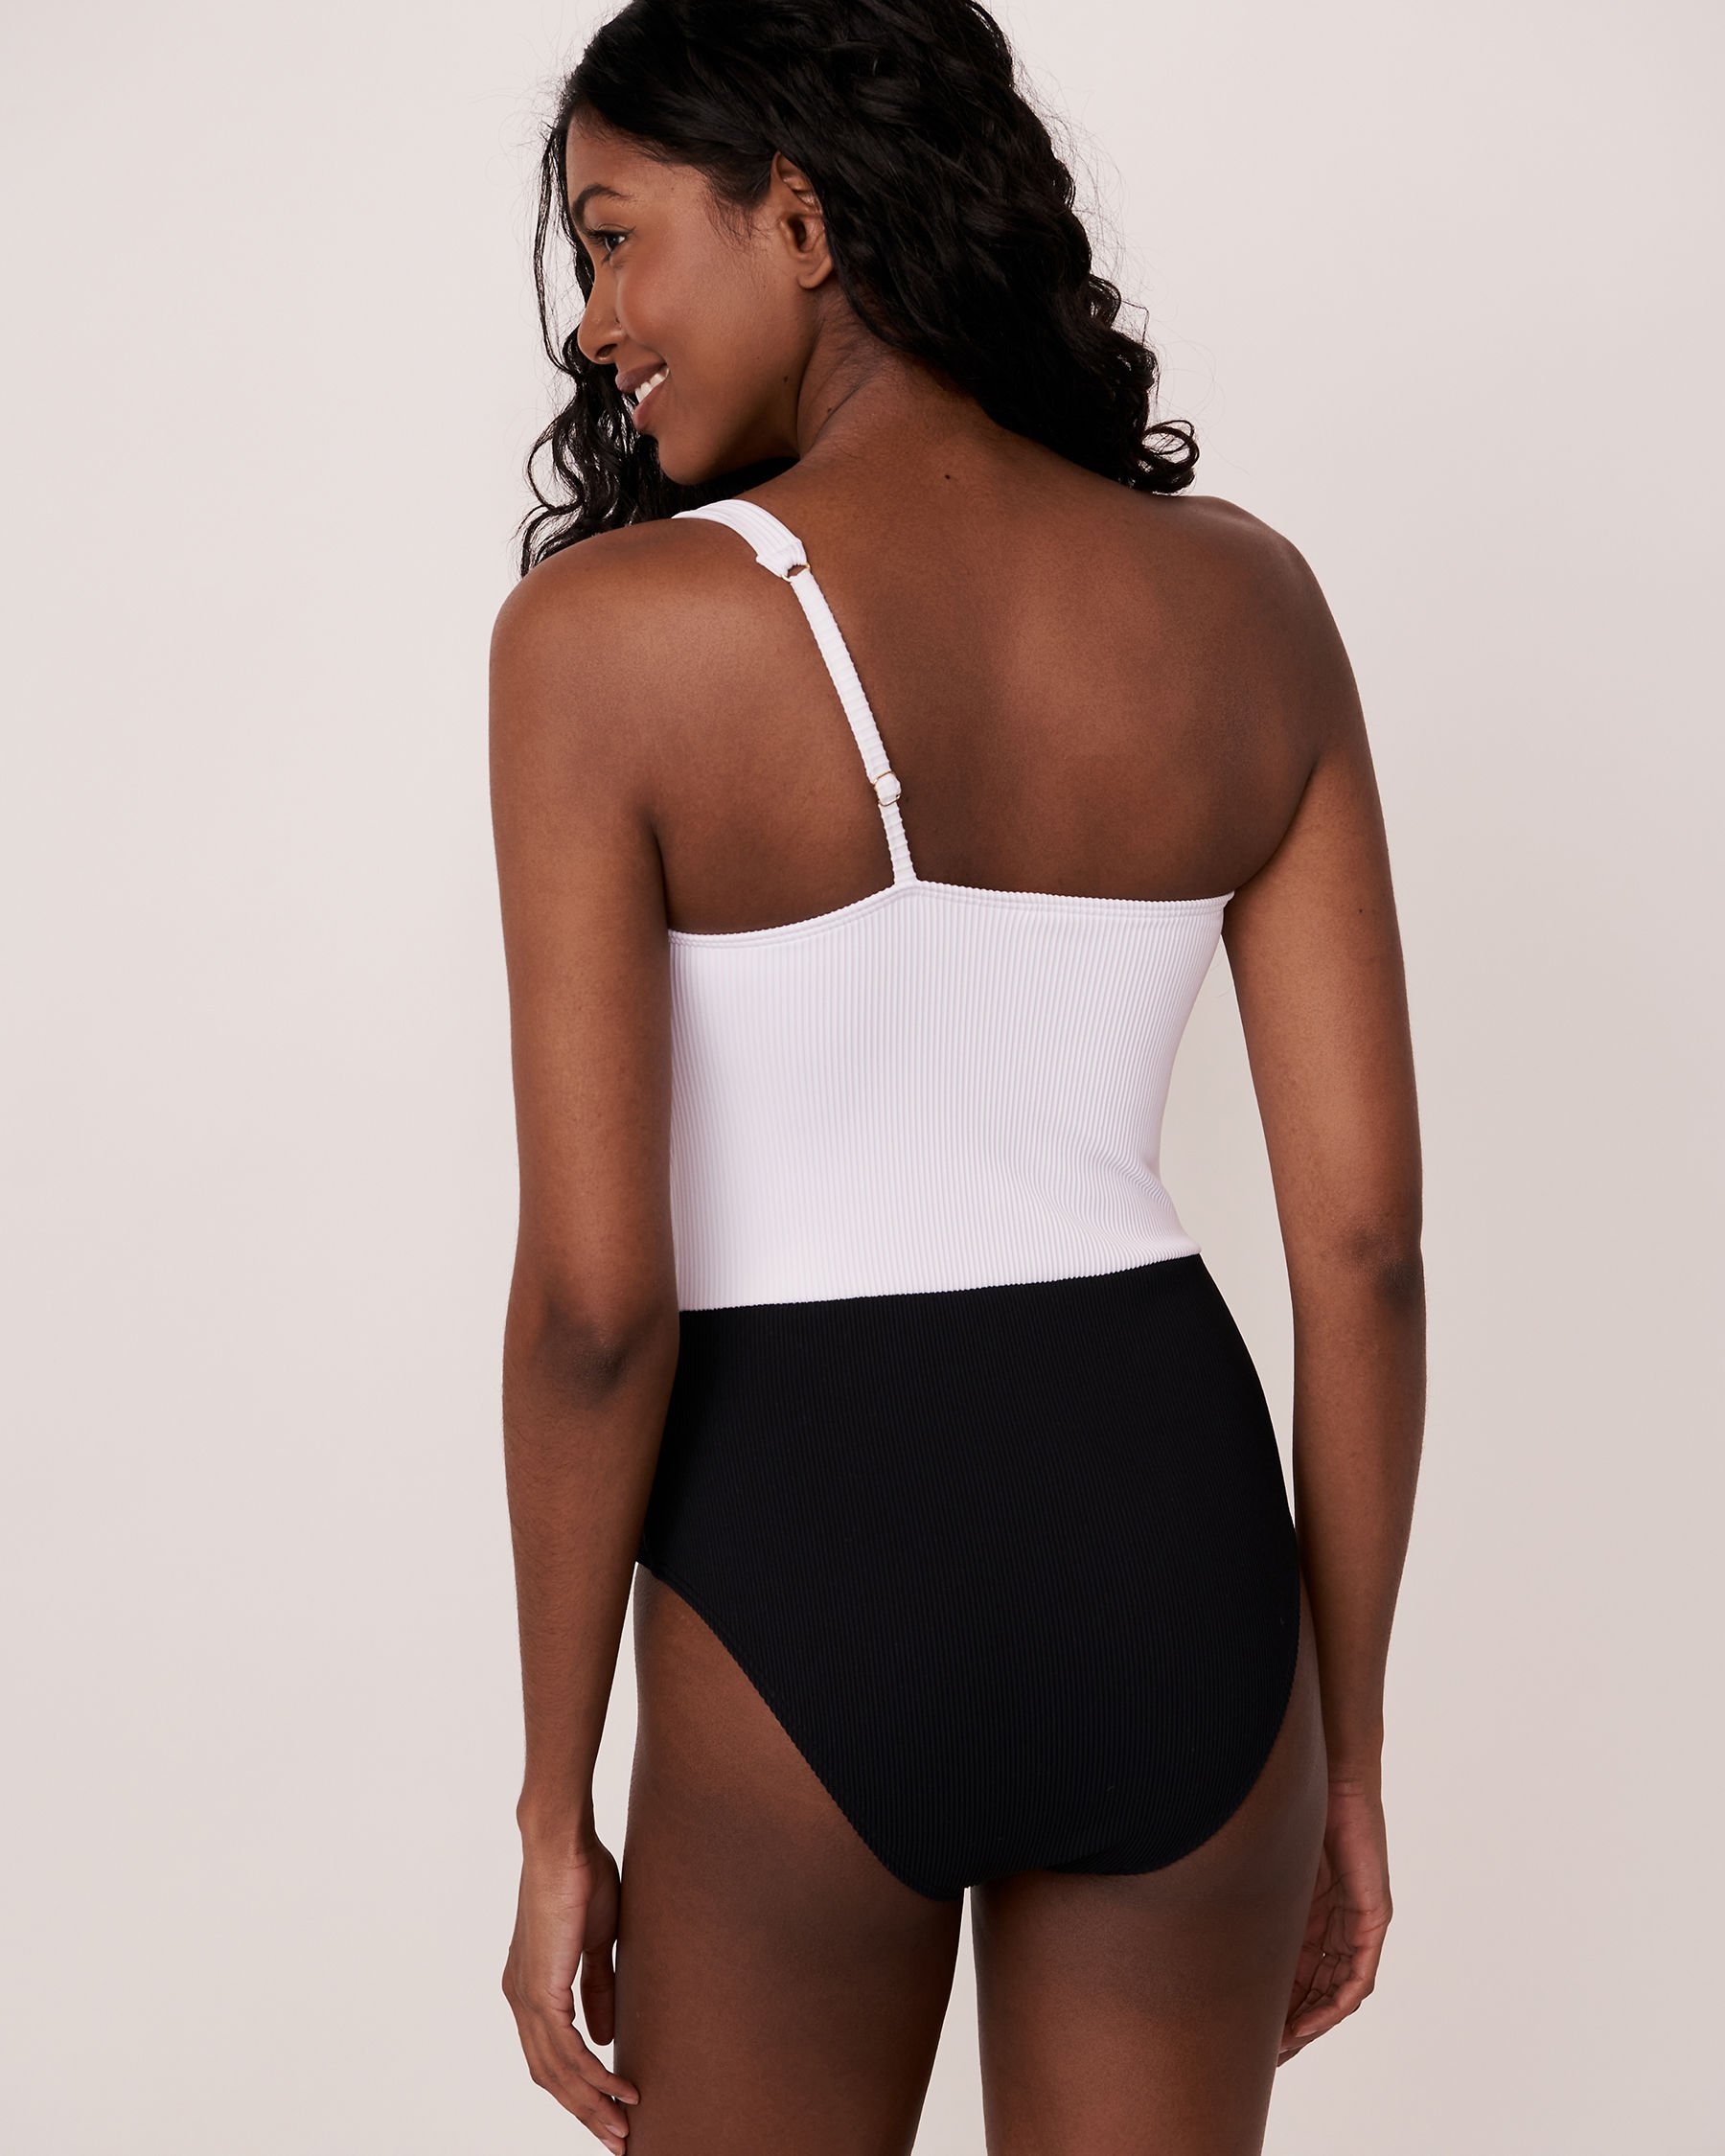 AQUAROSE ARIANNA Recycled Fibers One Shoulder One-piece Swimsuit Black 70400010 - View2